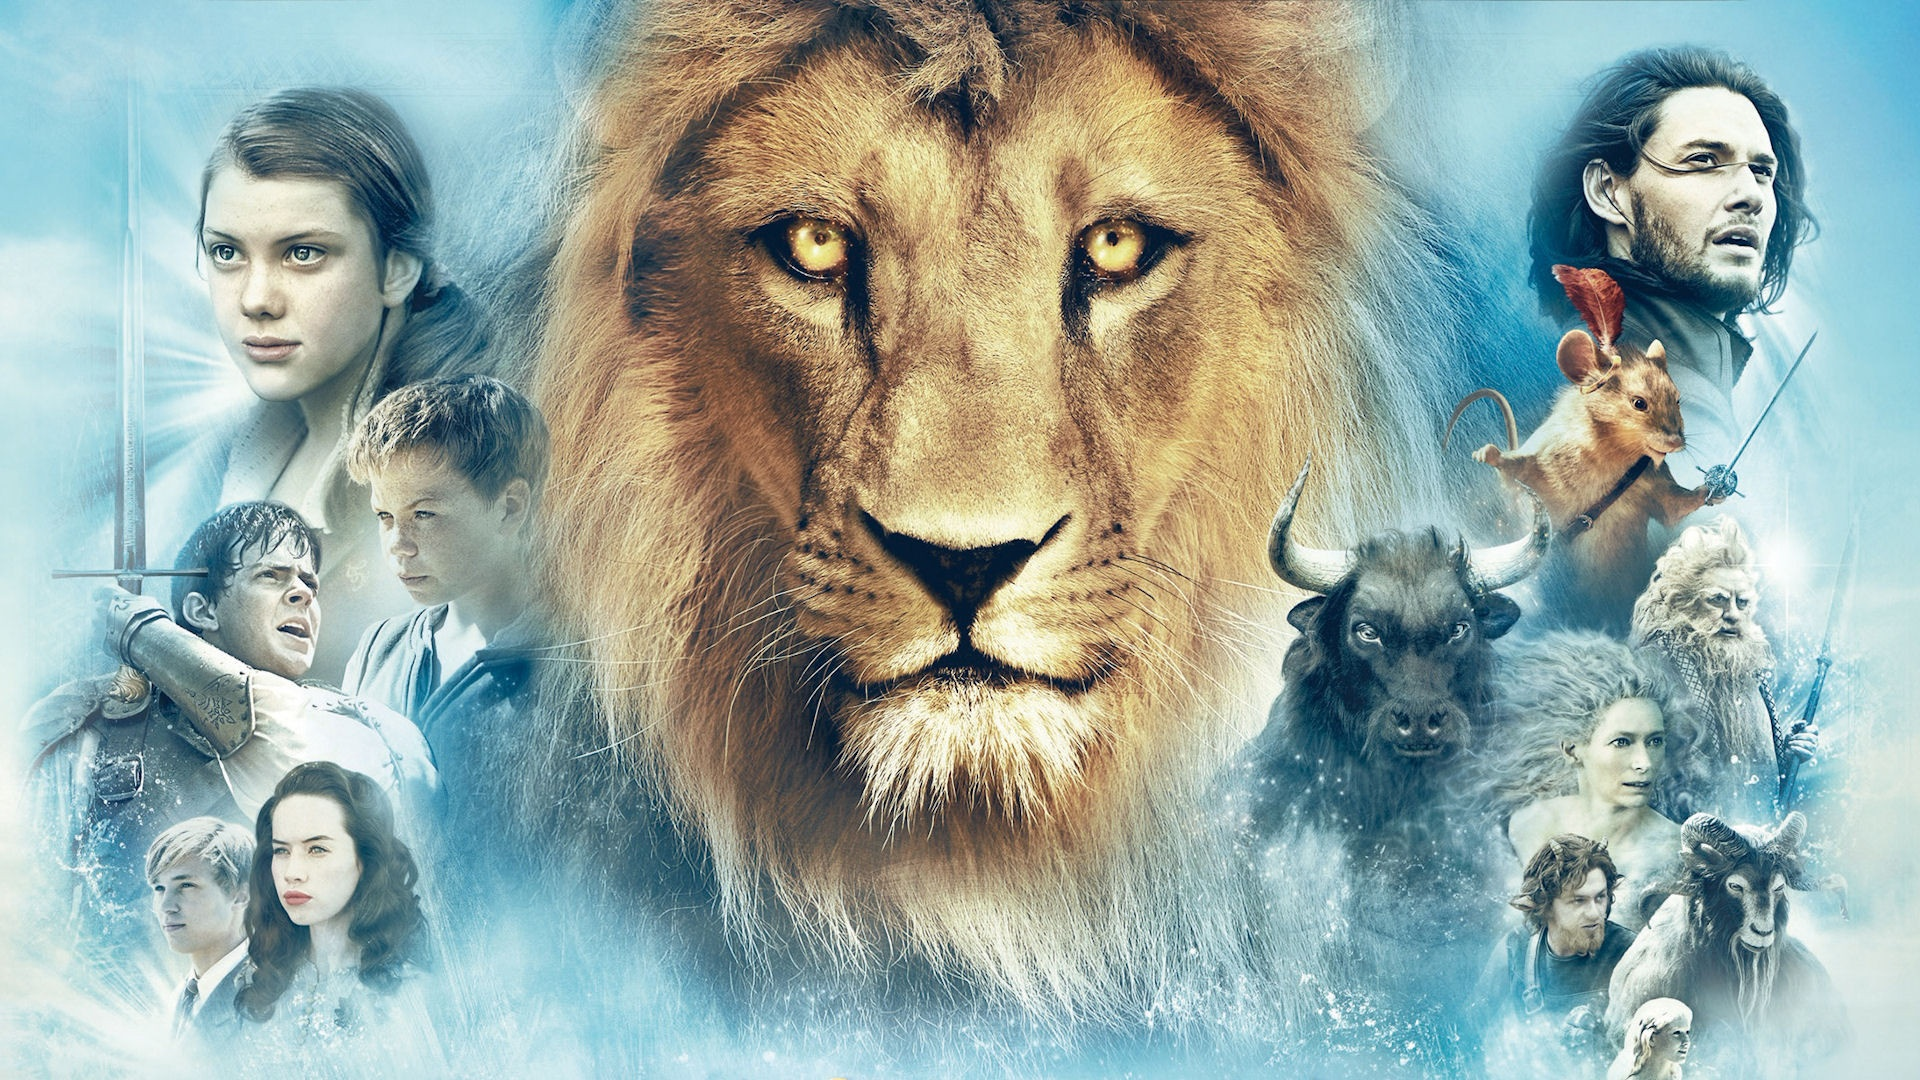 The chronicles of narnia prince caspian wallpaper wallpapers for ... for Narnia Aslan Wallpaper  59nar